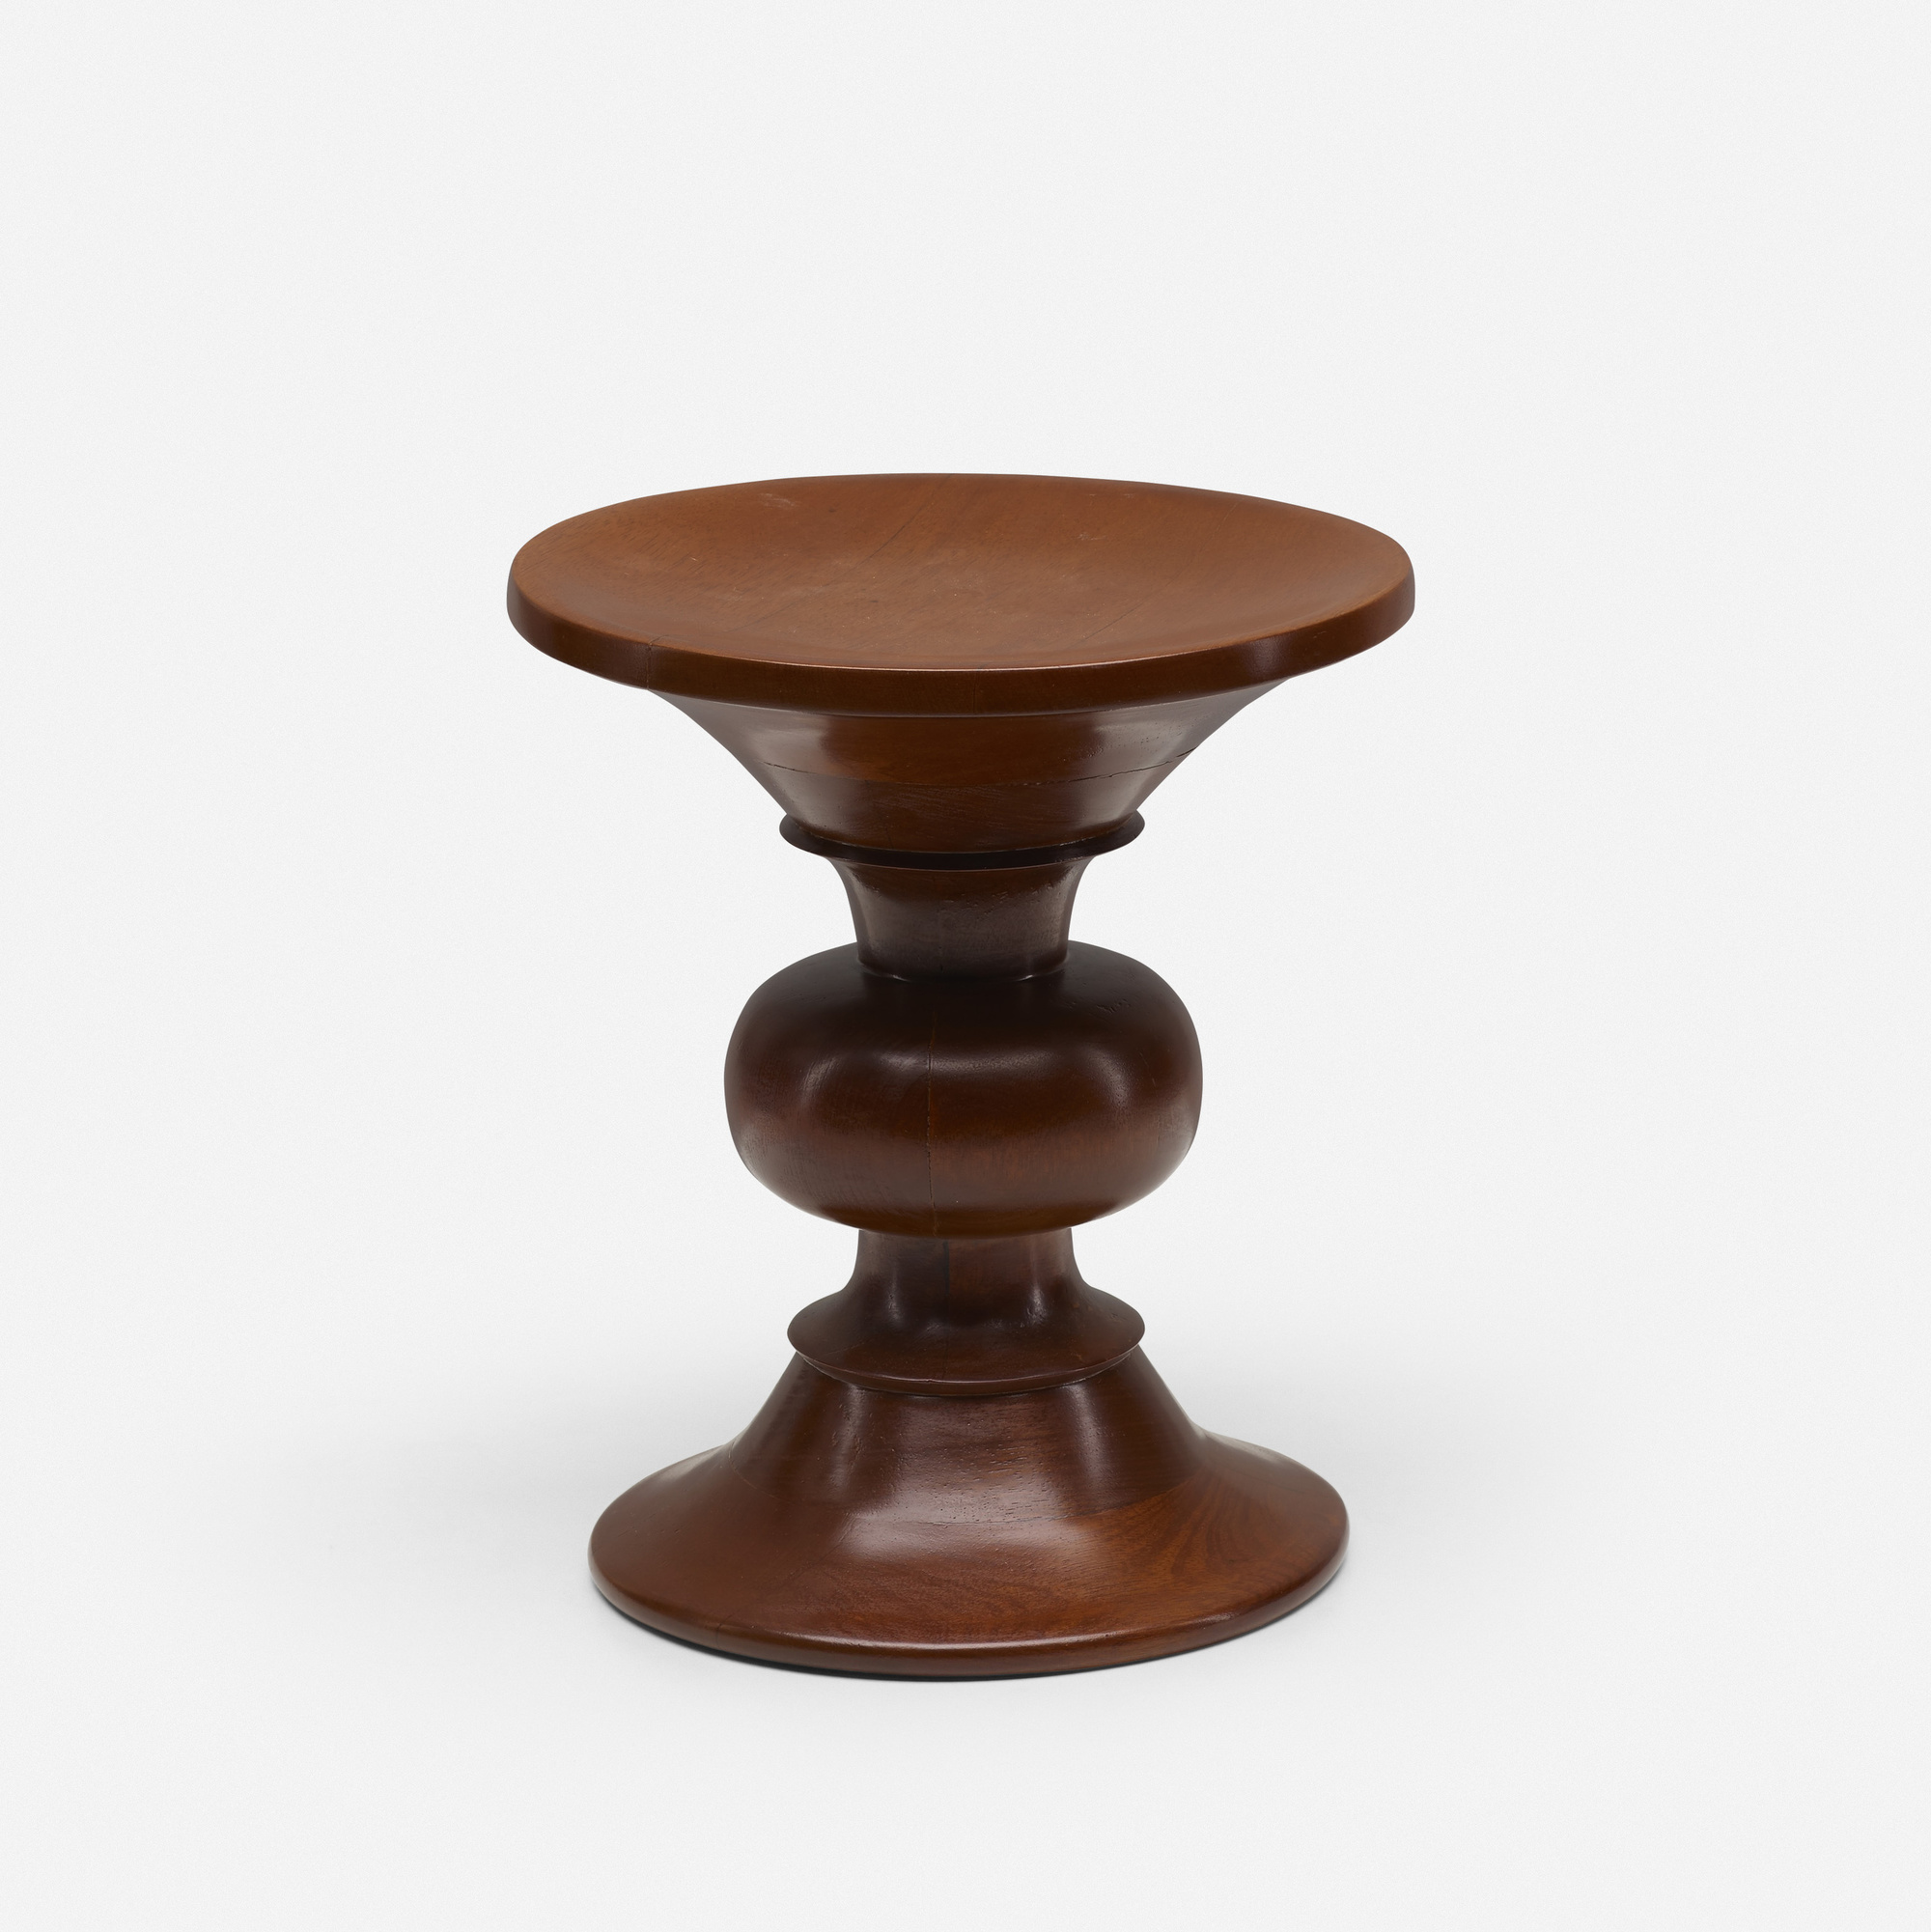 268: Charles and Ray Eames / Time Life stool (1 of 1)